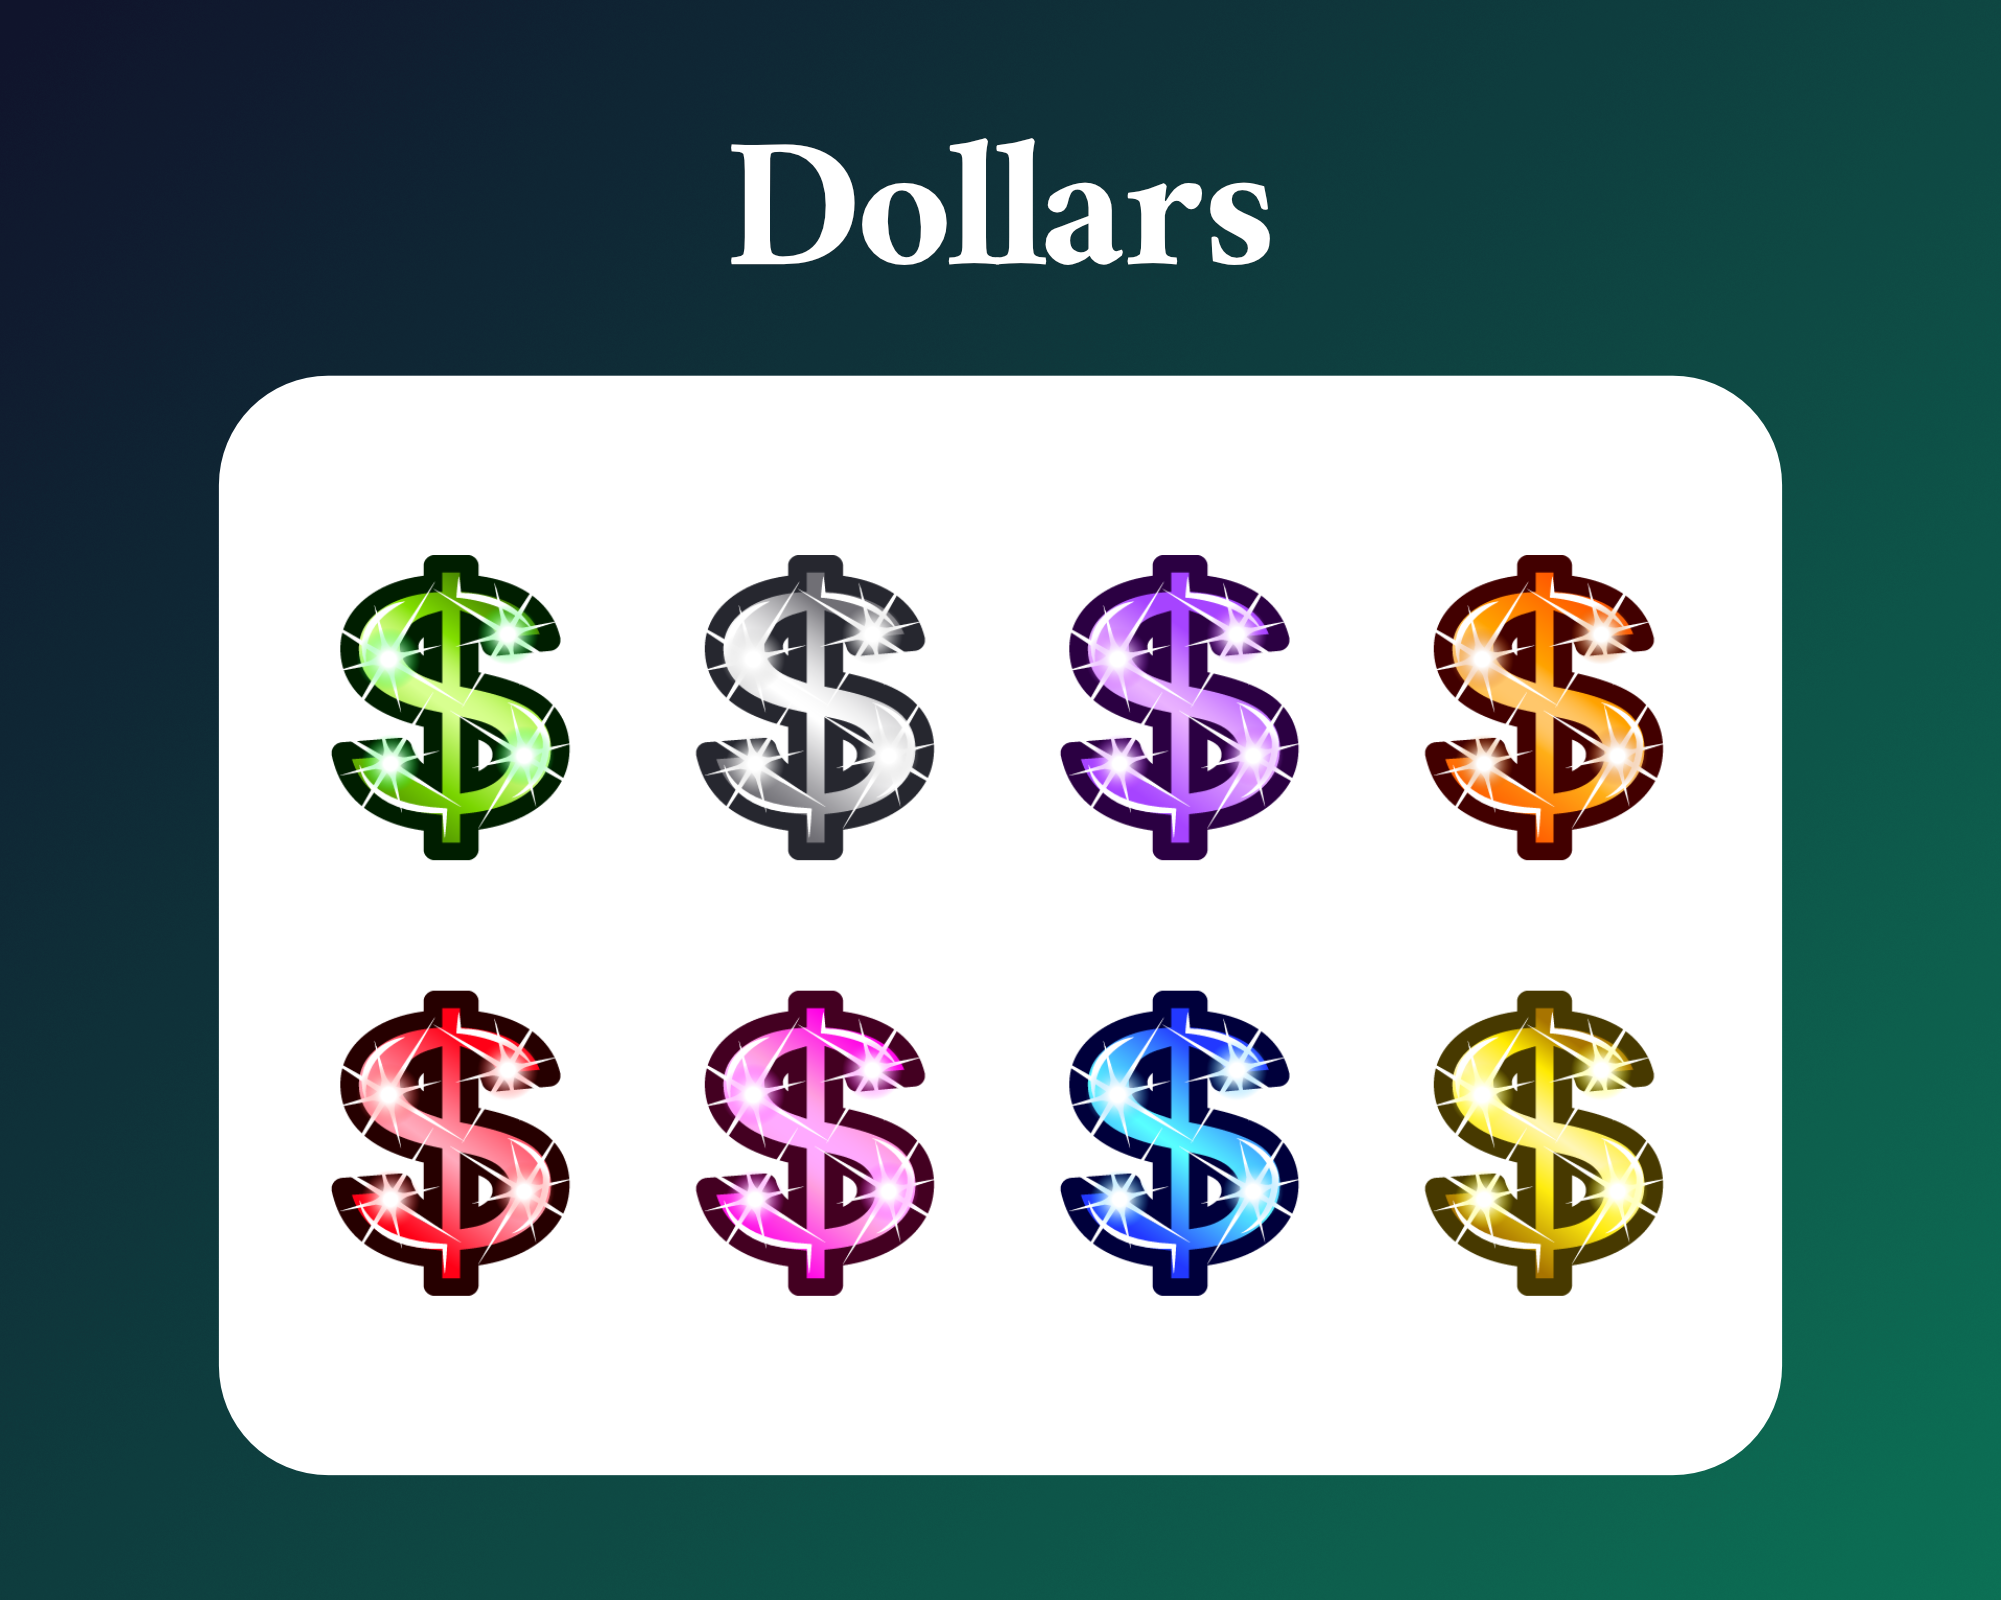 Dollar sign sub badges for twitch